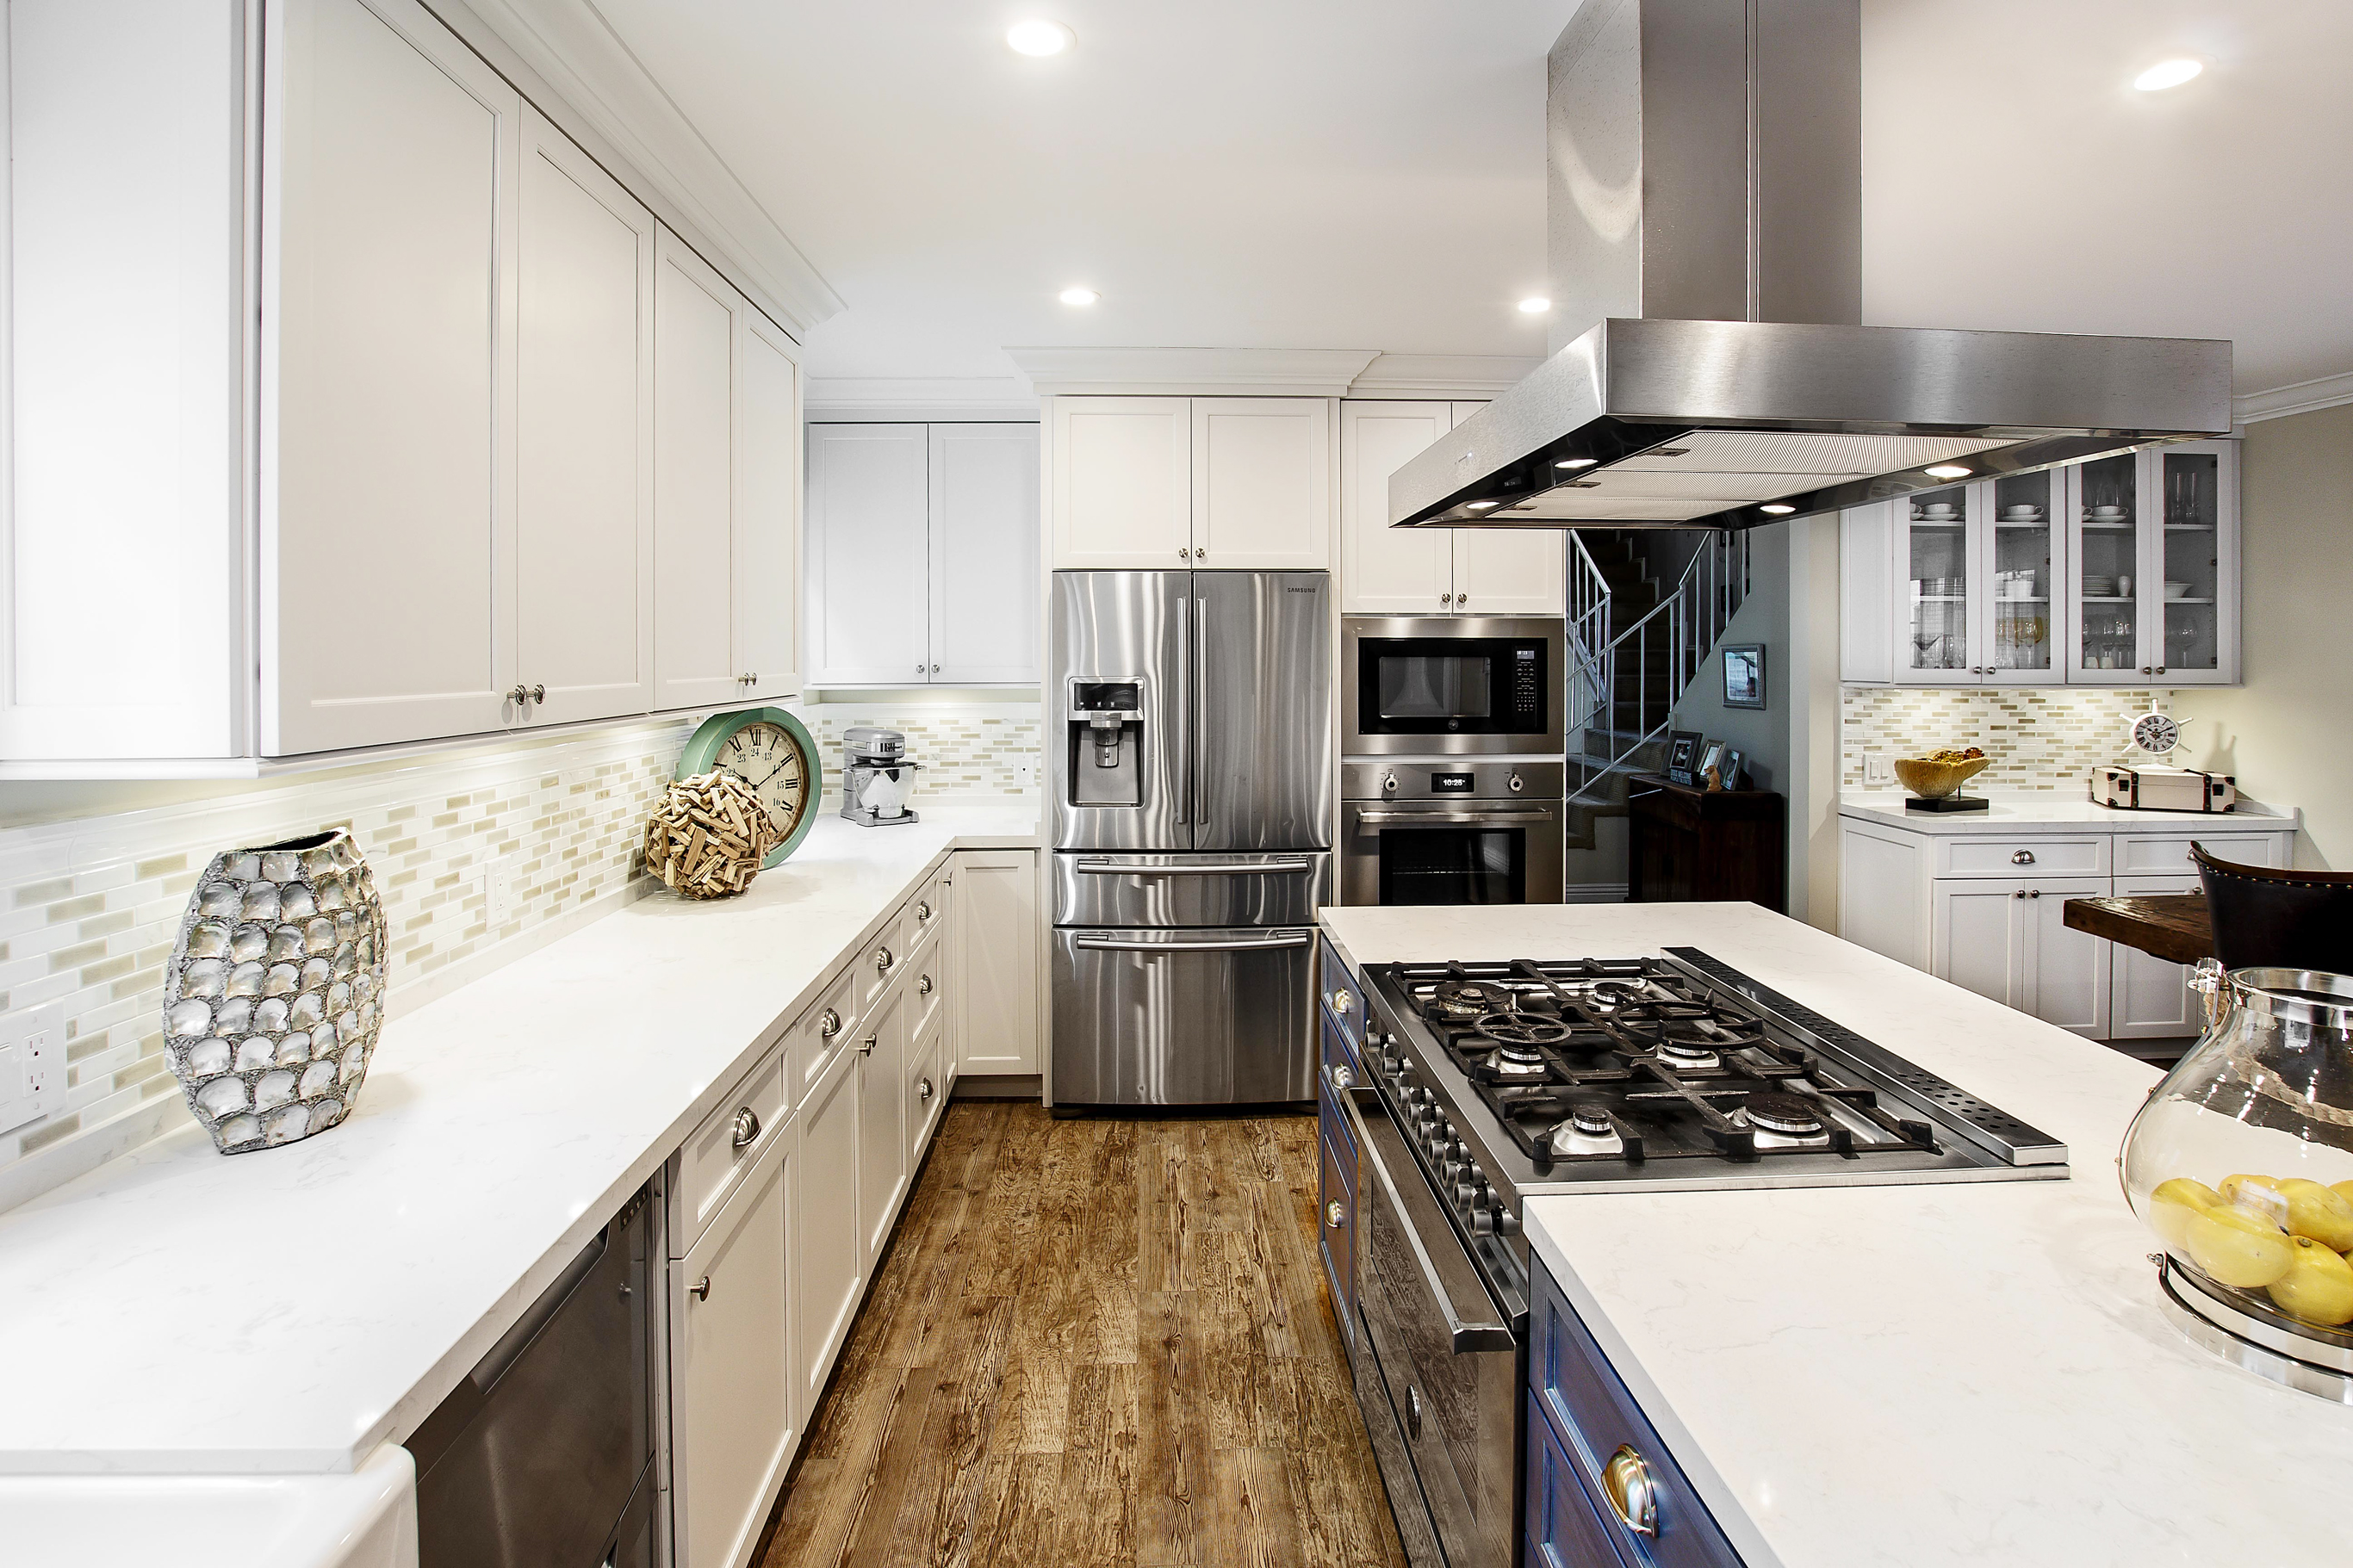 Shaker Kitchen Cabinets in Just White